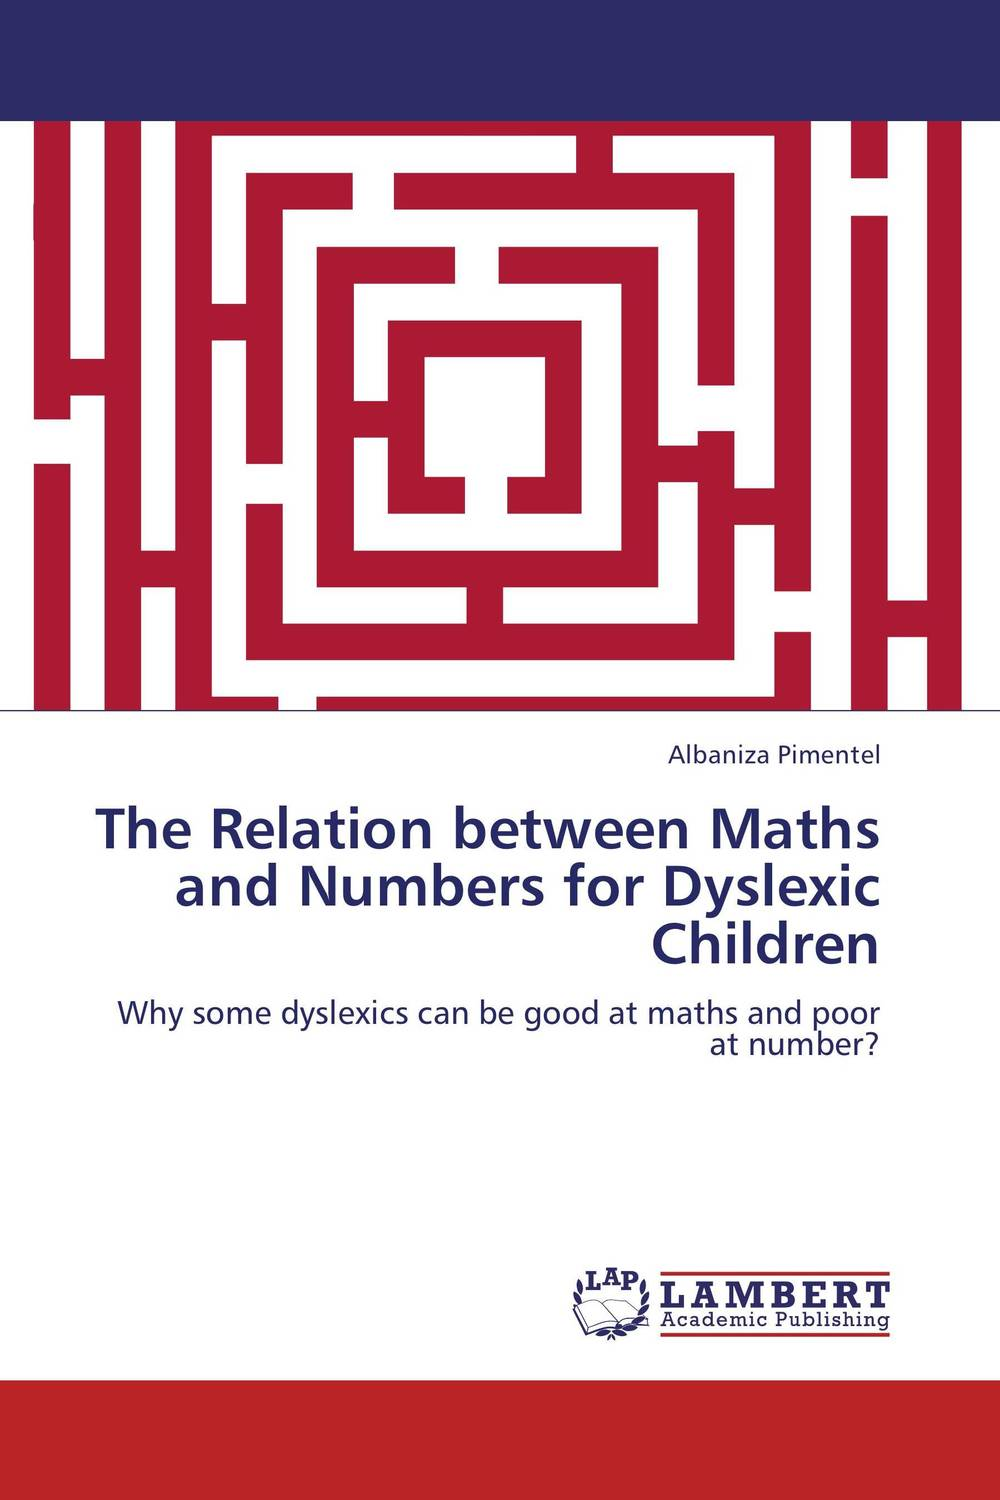 The Relation between Maths and Numbers for Dyslexic Children